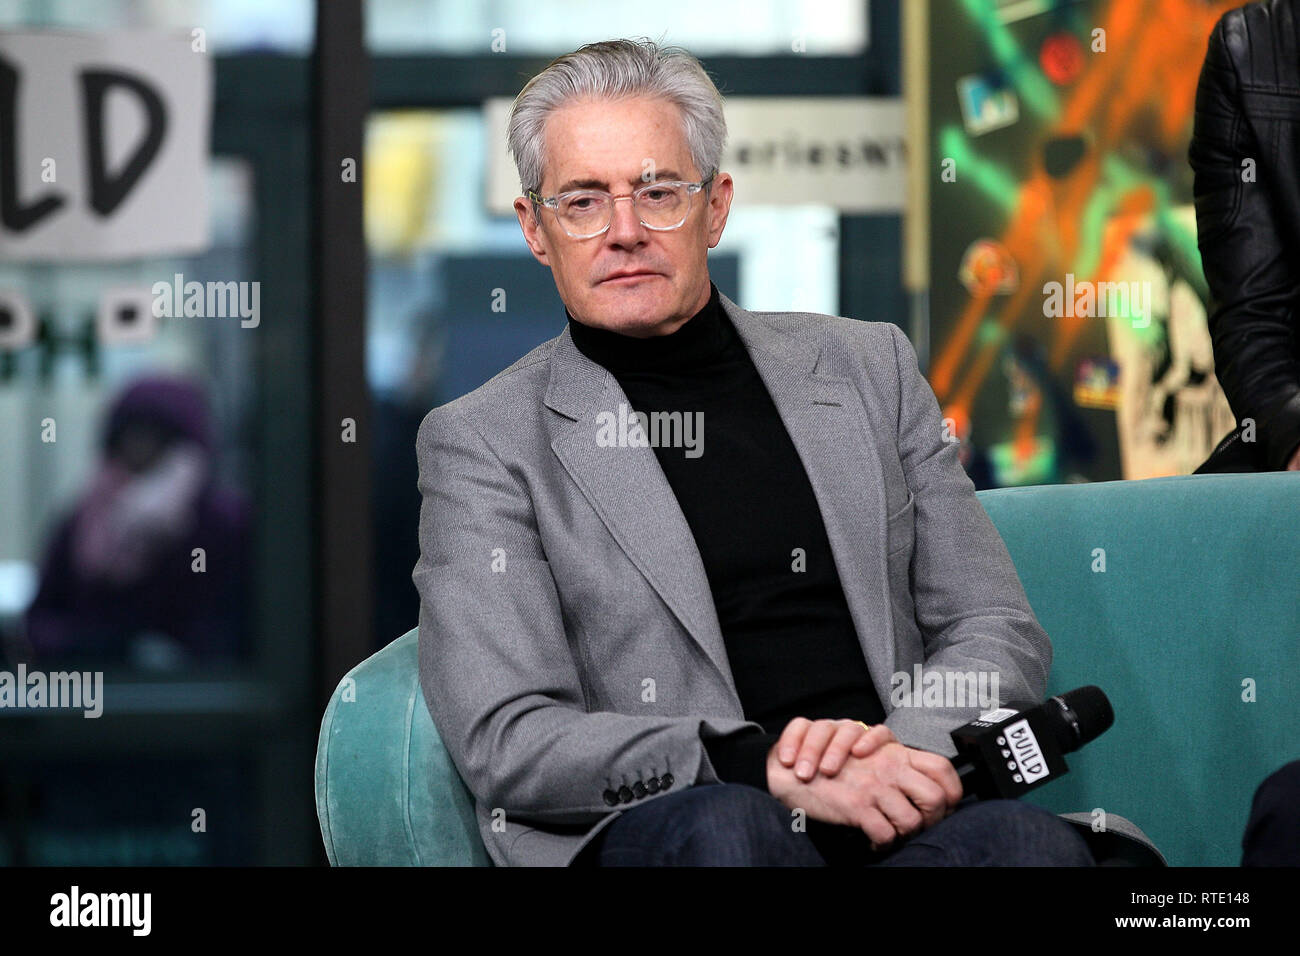 New York, USA. 28 Feb, 2019. Kyle McLaughlan at The Thursday, Feb 28, 2019 BUILD Series Inside Candids discussing the new film 'Giant Little Ones' at BUILD Studio in New York, USA. Credit: Steve Mack/S.D. Mack Pictures/Alamy Live News - Stock Image